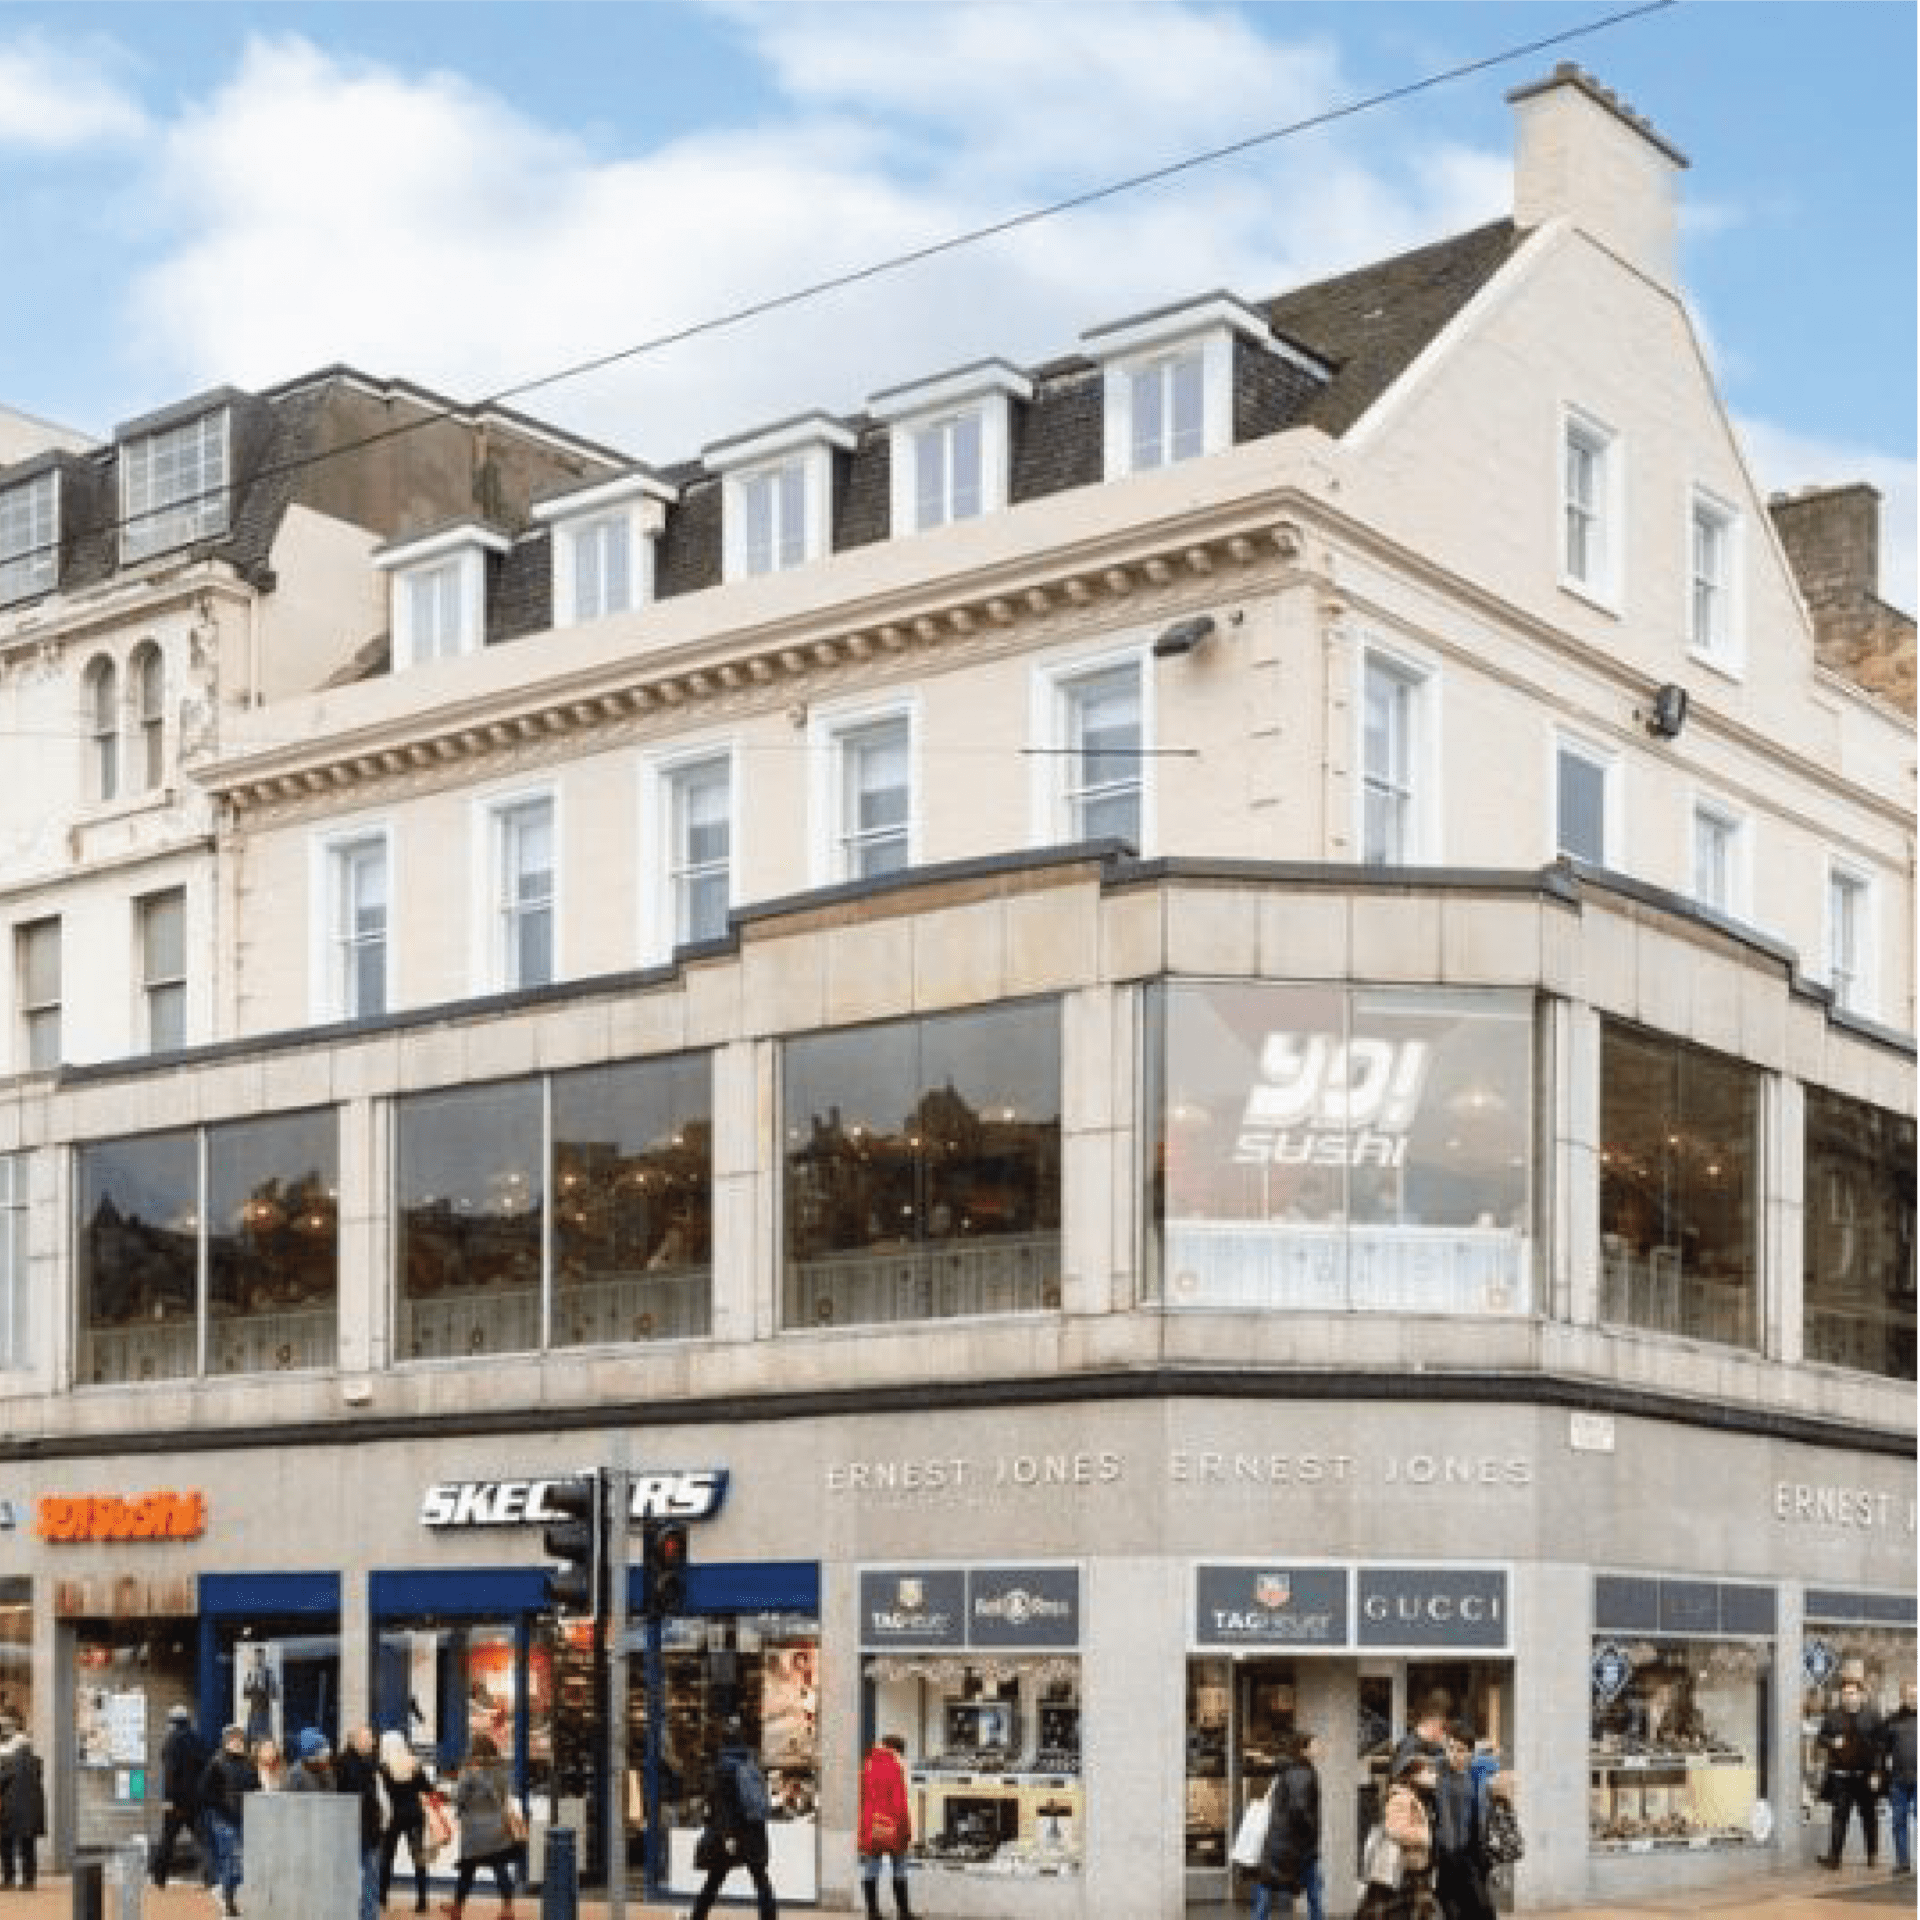 Edinburgh Princes Street, luxury apartments, iMist installed a fire suppression system with 67 nozzles